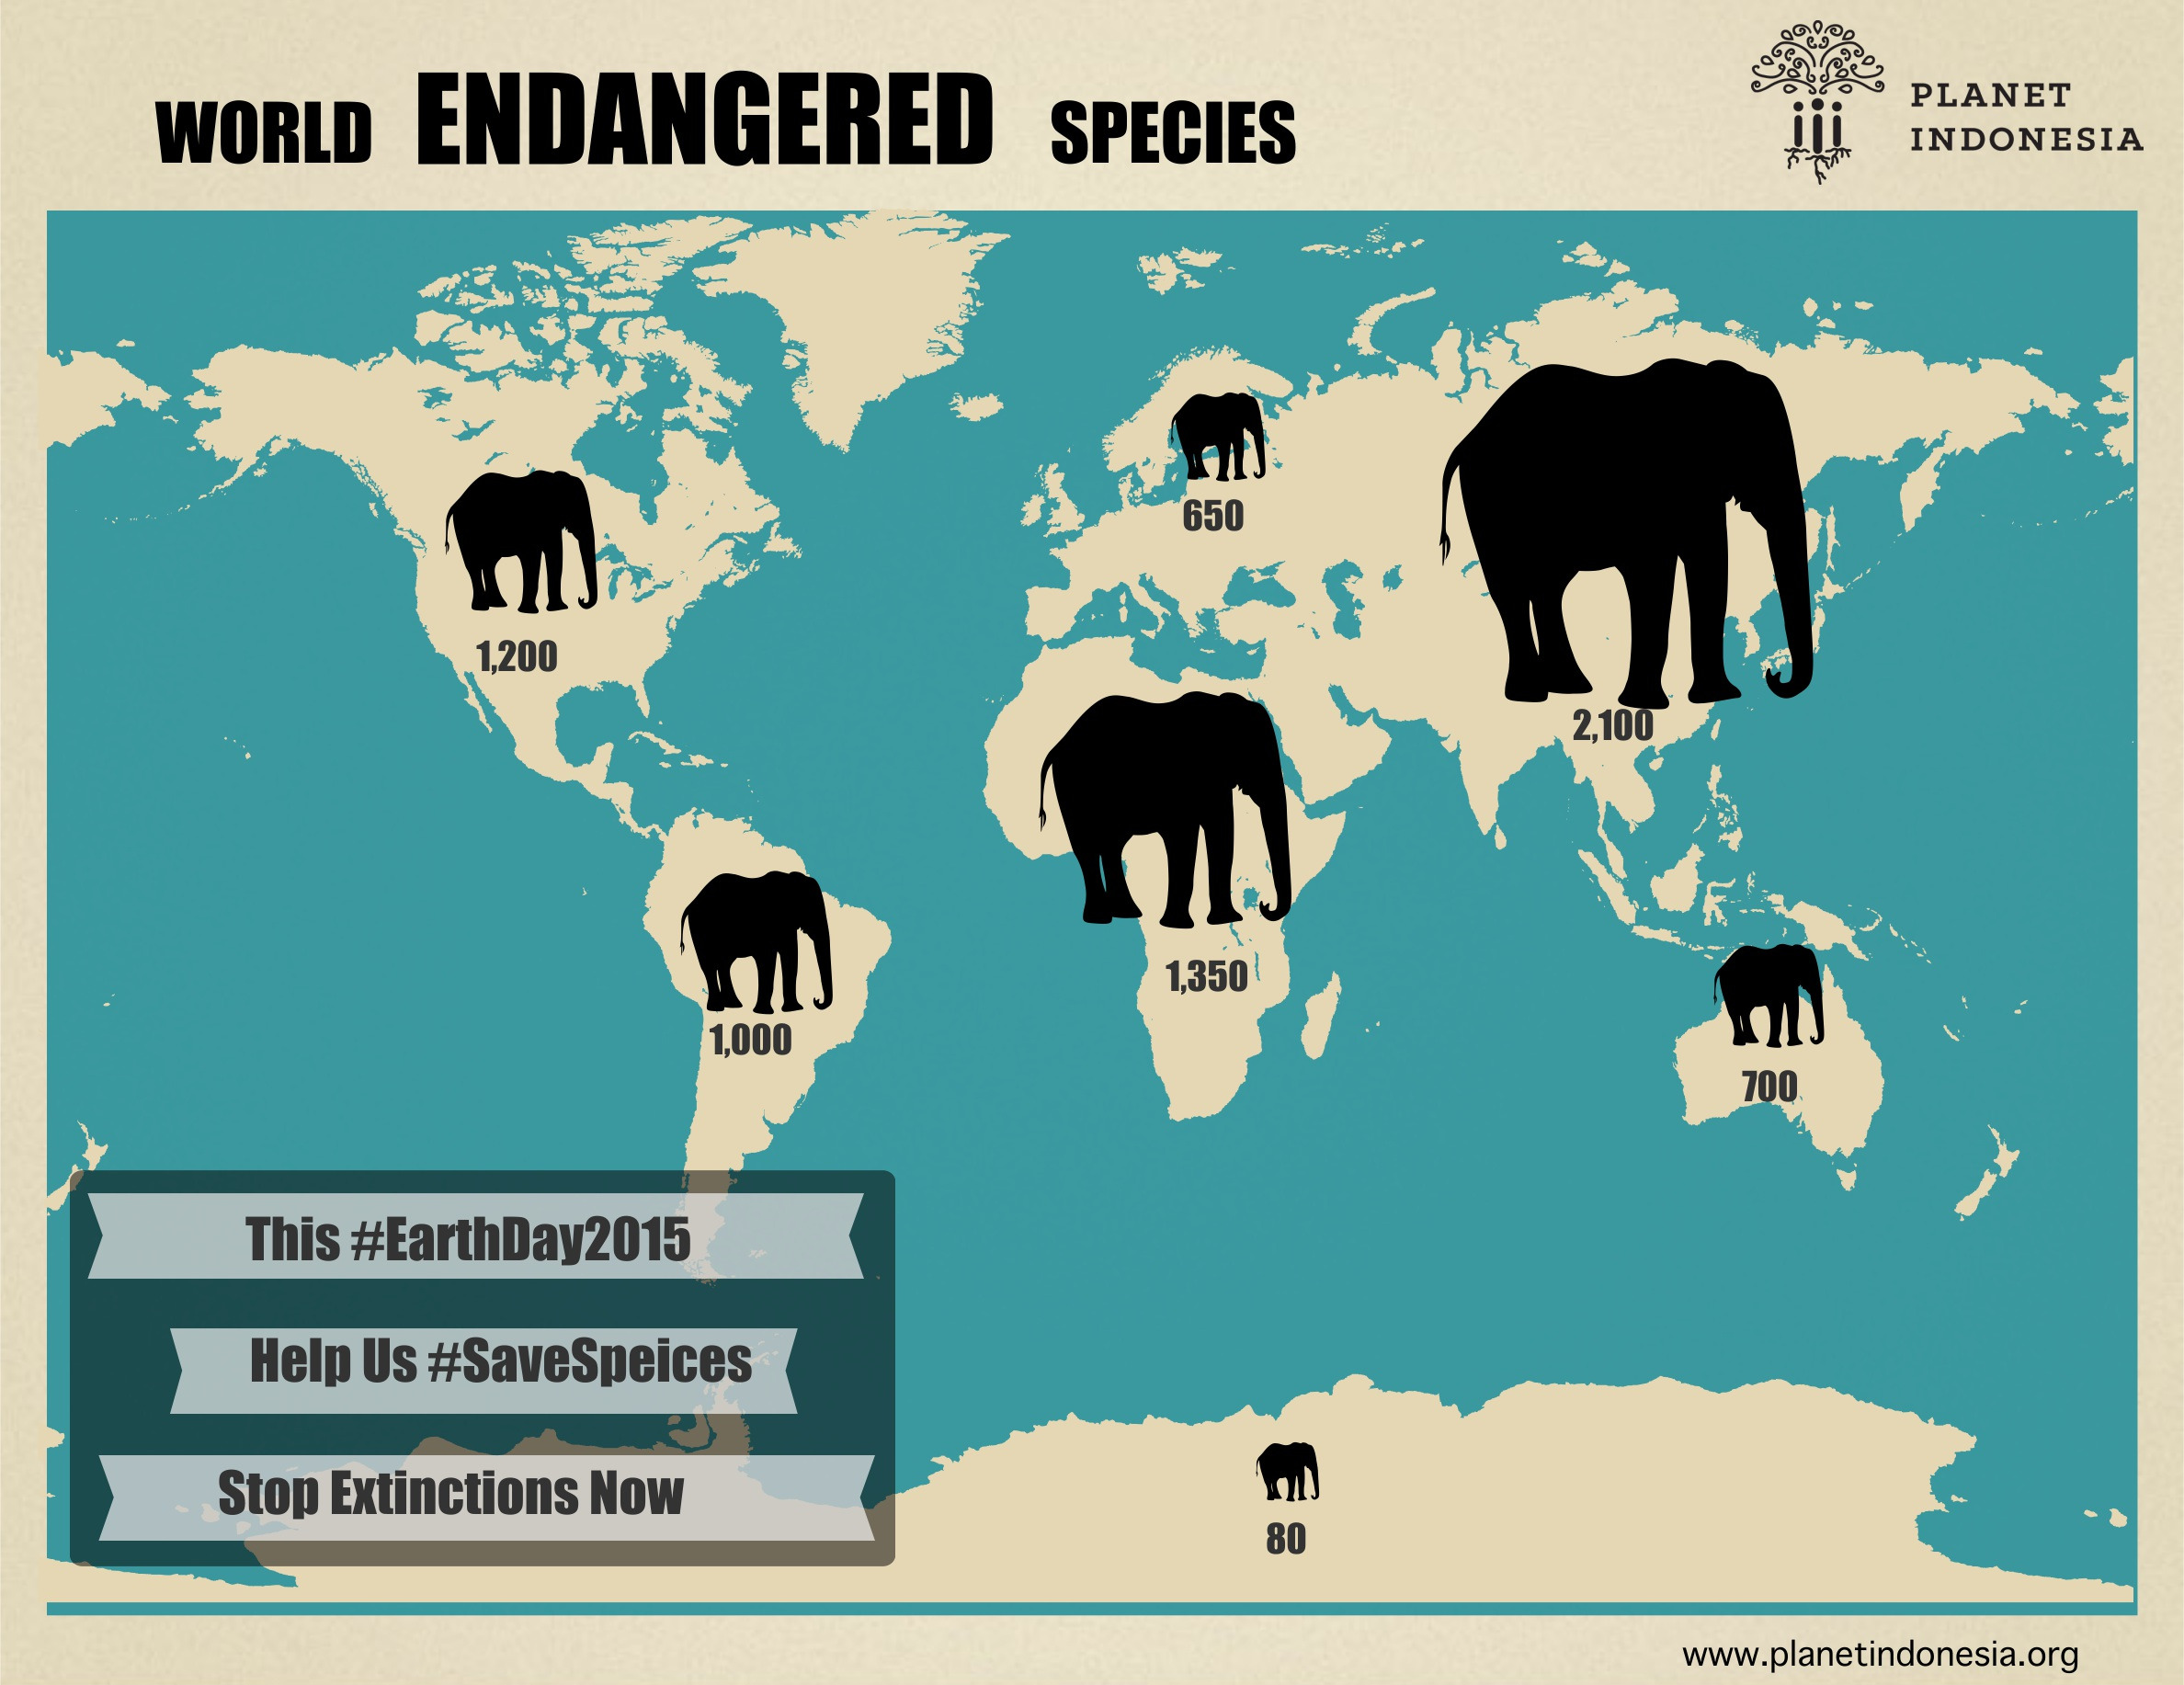 Indonesia has the  2nd highest number  of endangered species in the world.  Asia has the  highest number  of endangered species in the world.